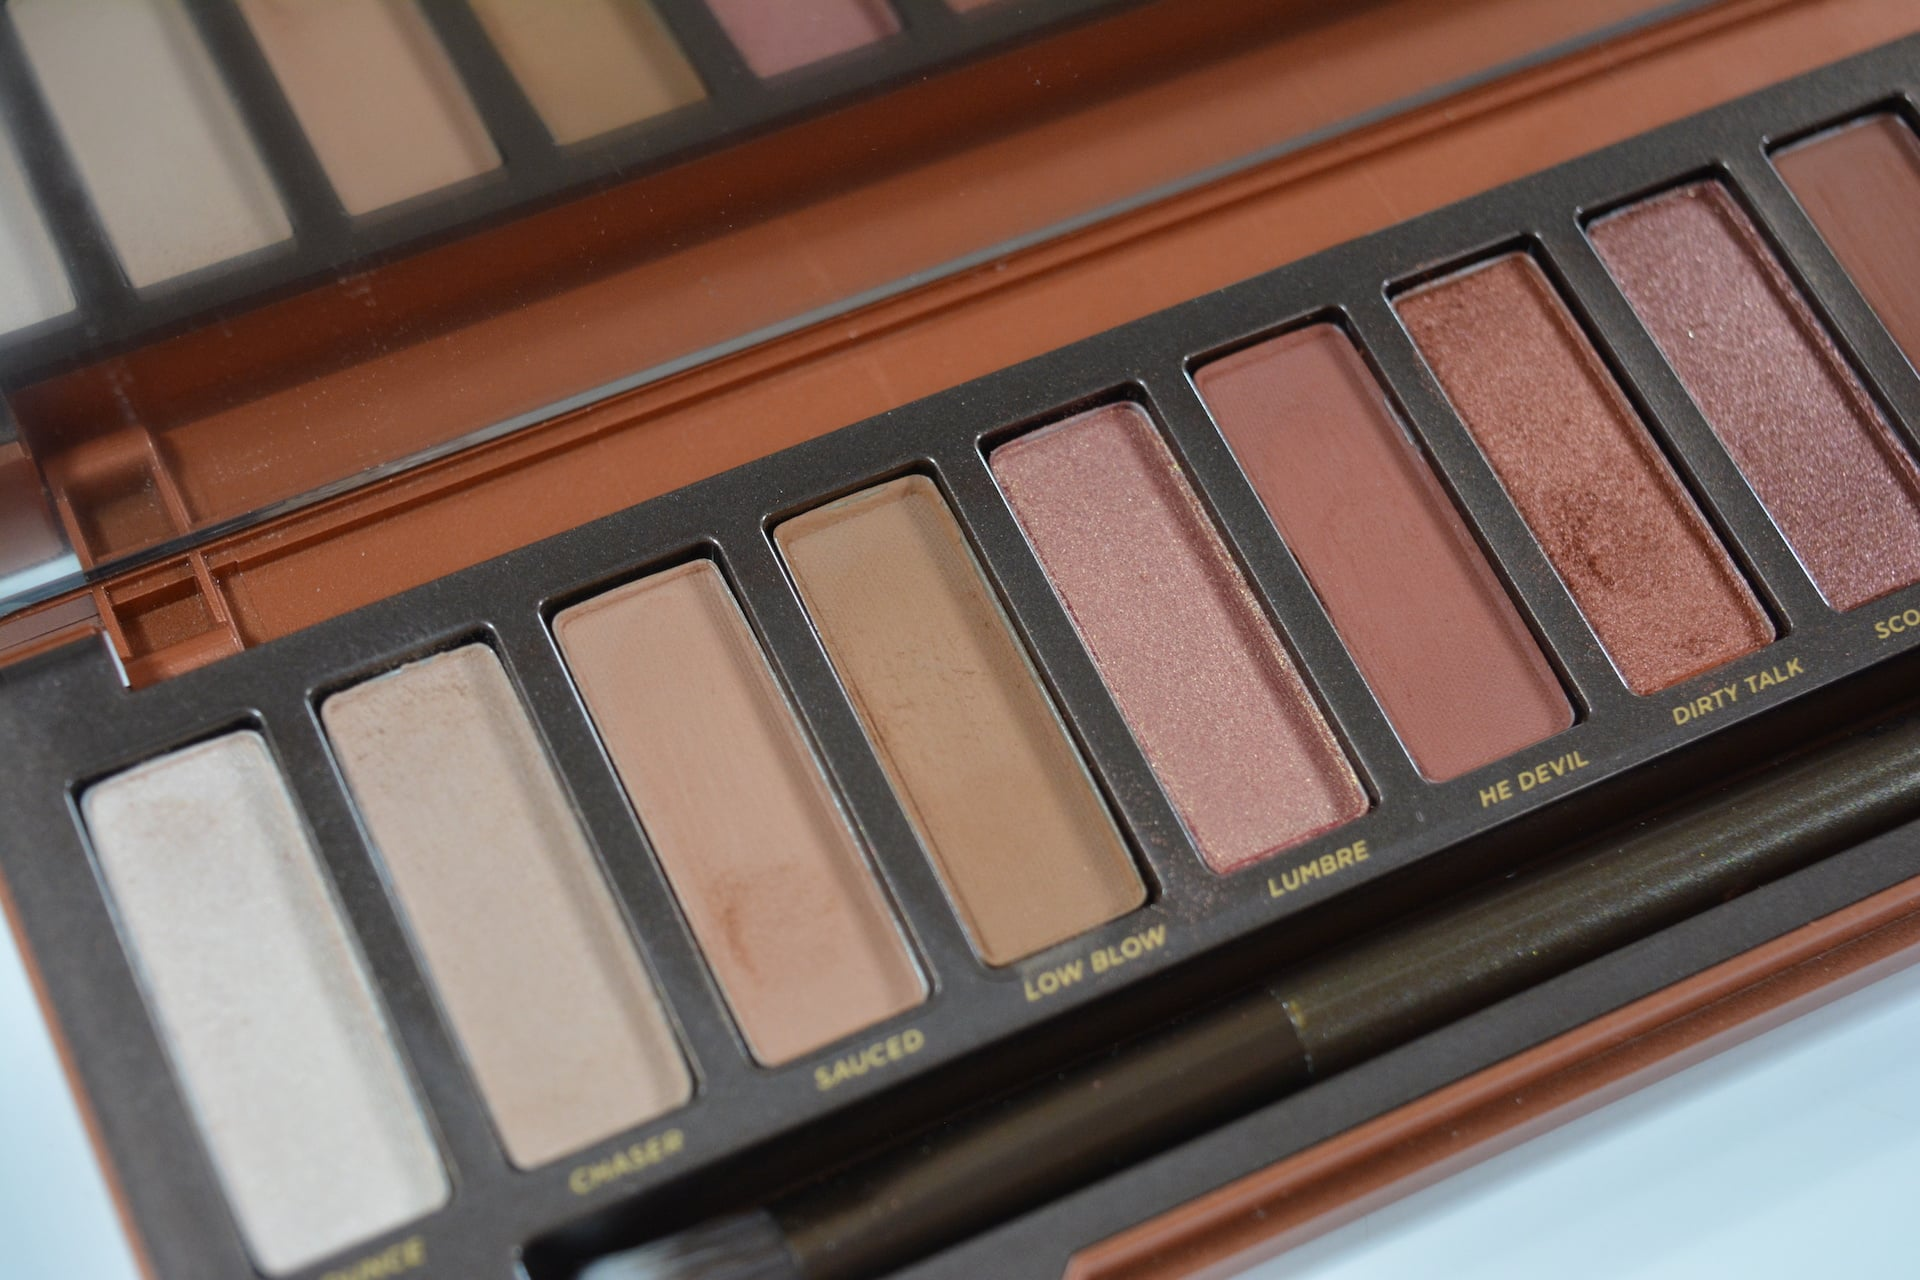 Naked Heat Look Review 05